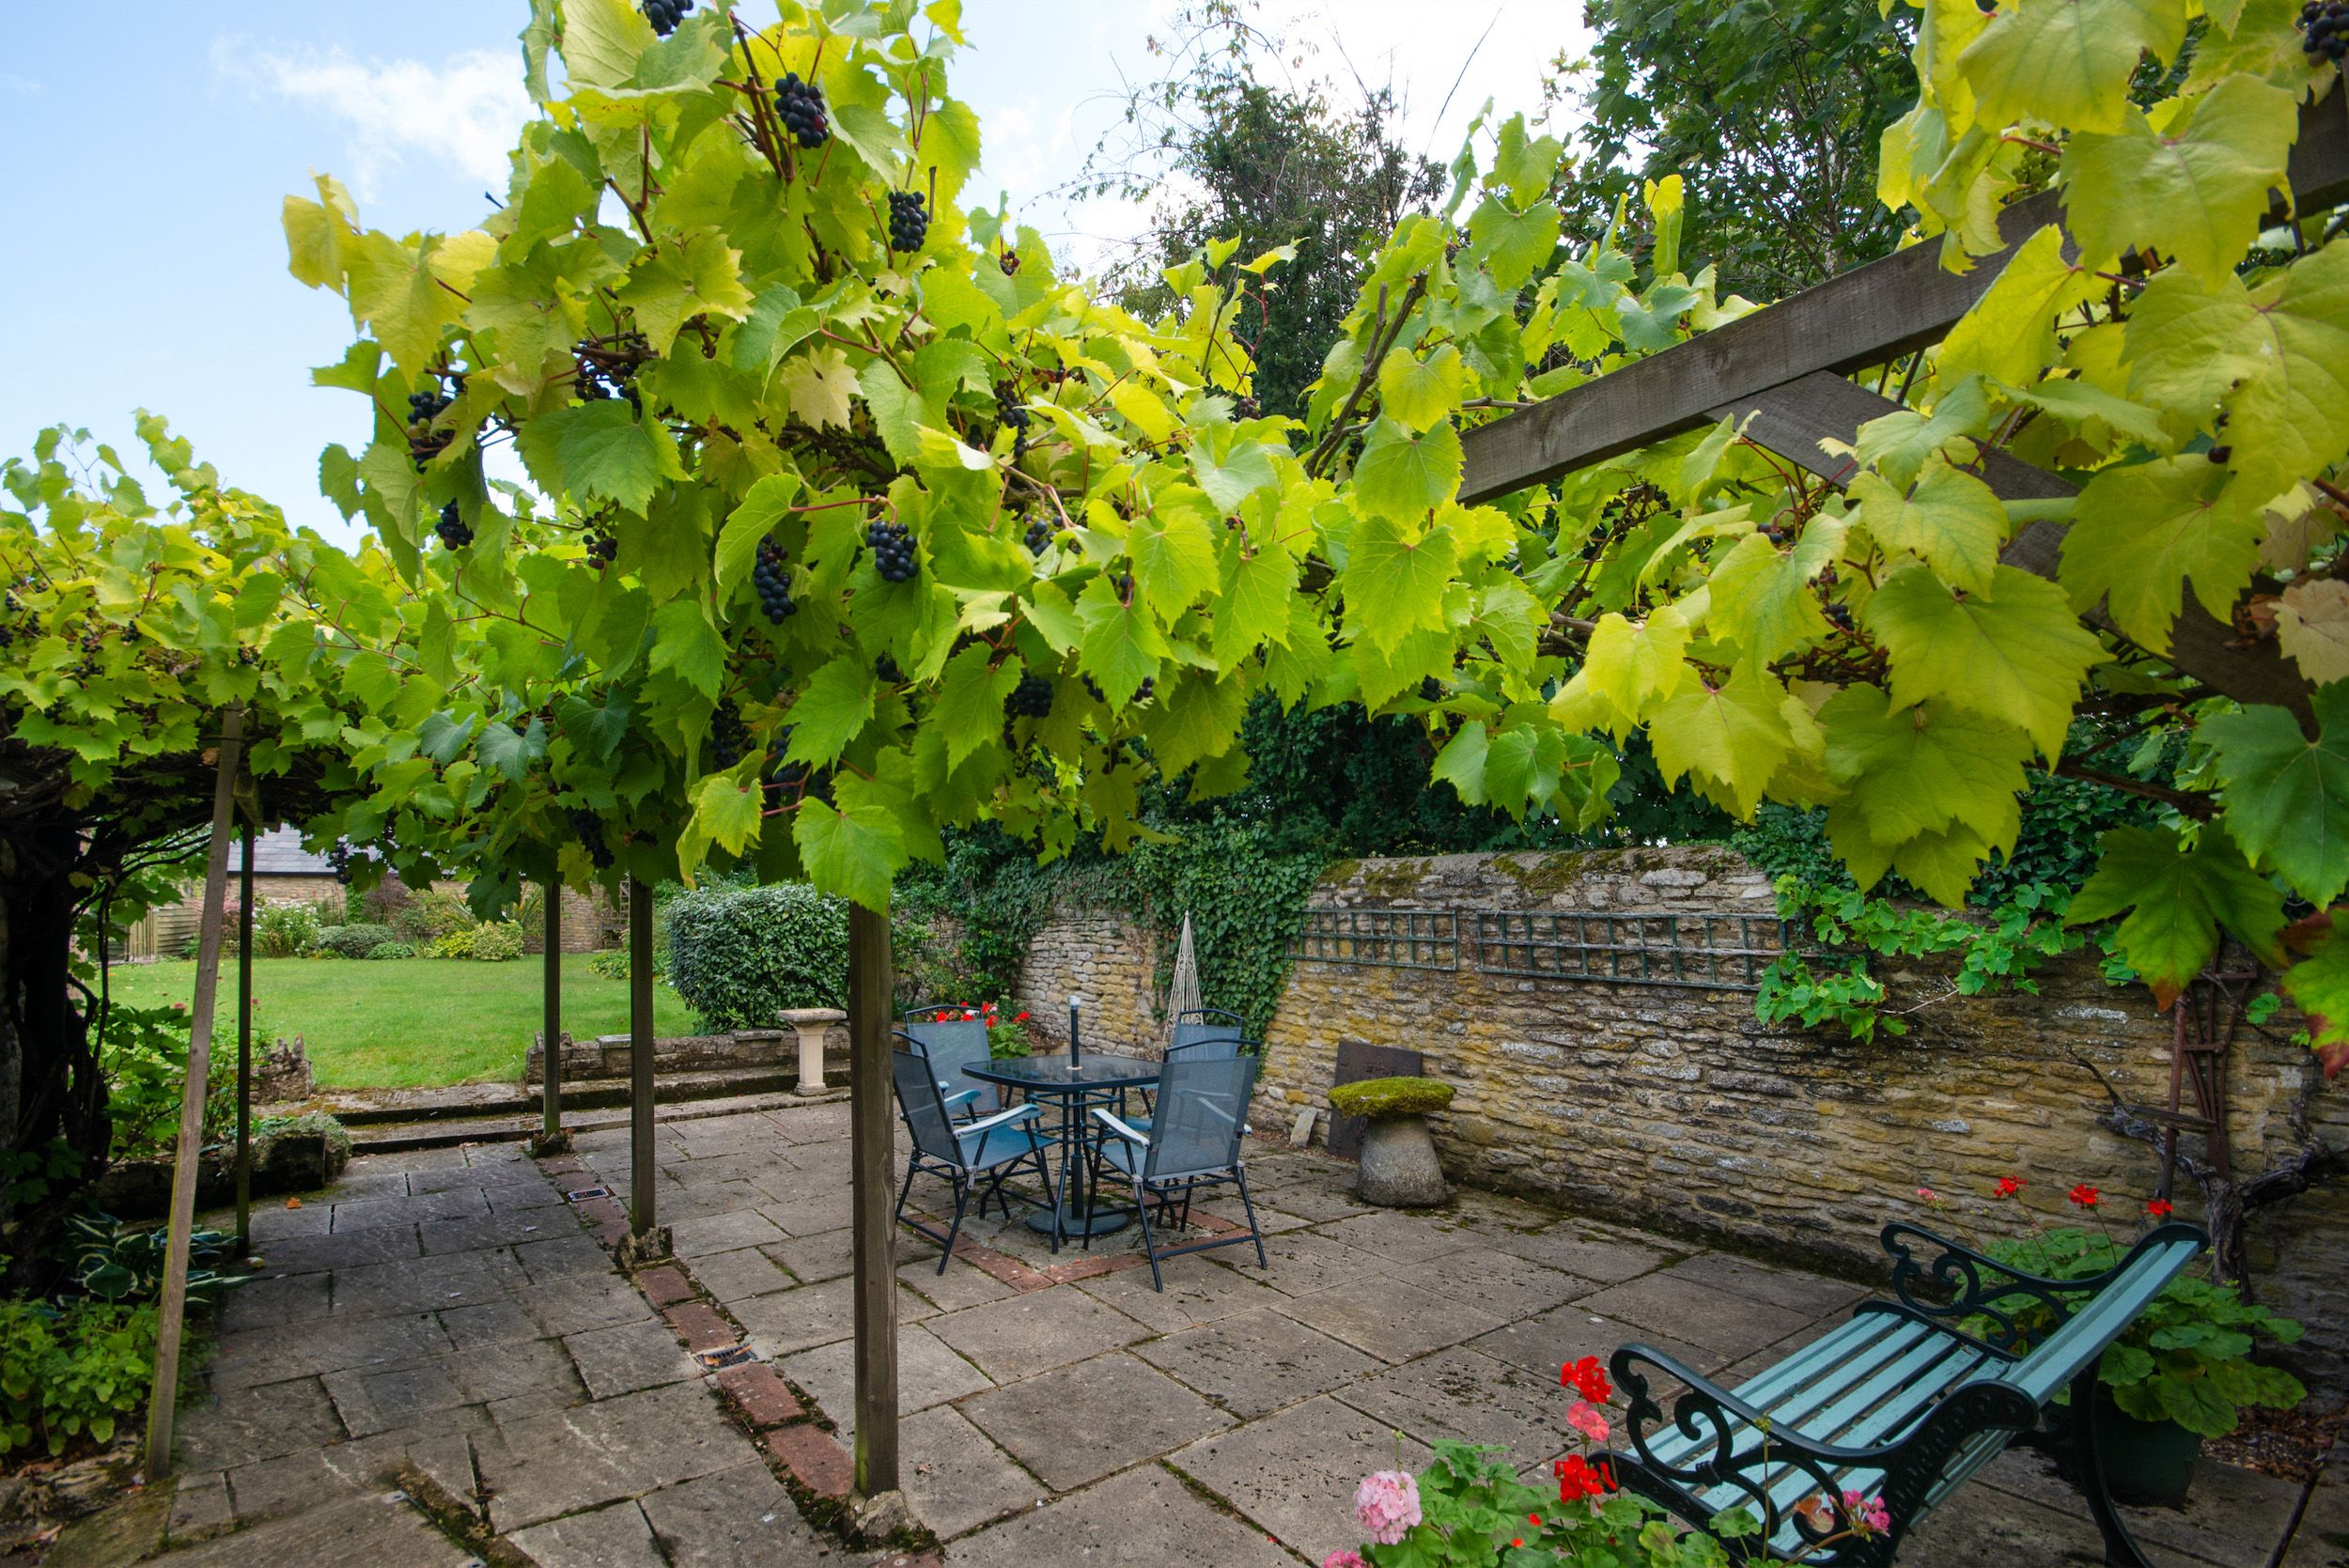 Charming Cotswold house for sale in the village of Bampton, where Downton Abbey was filmed